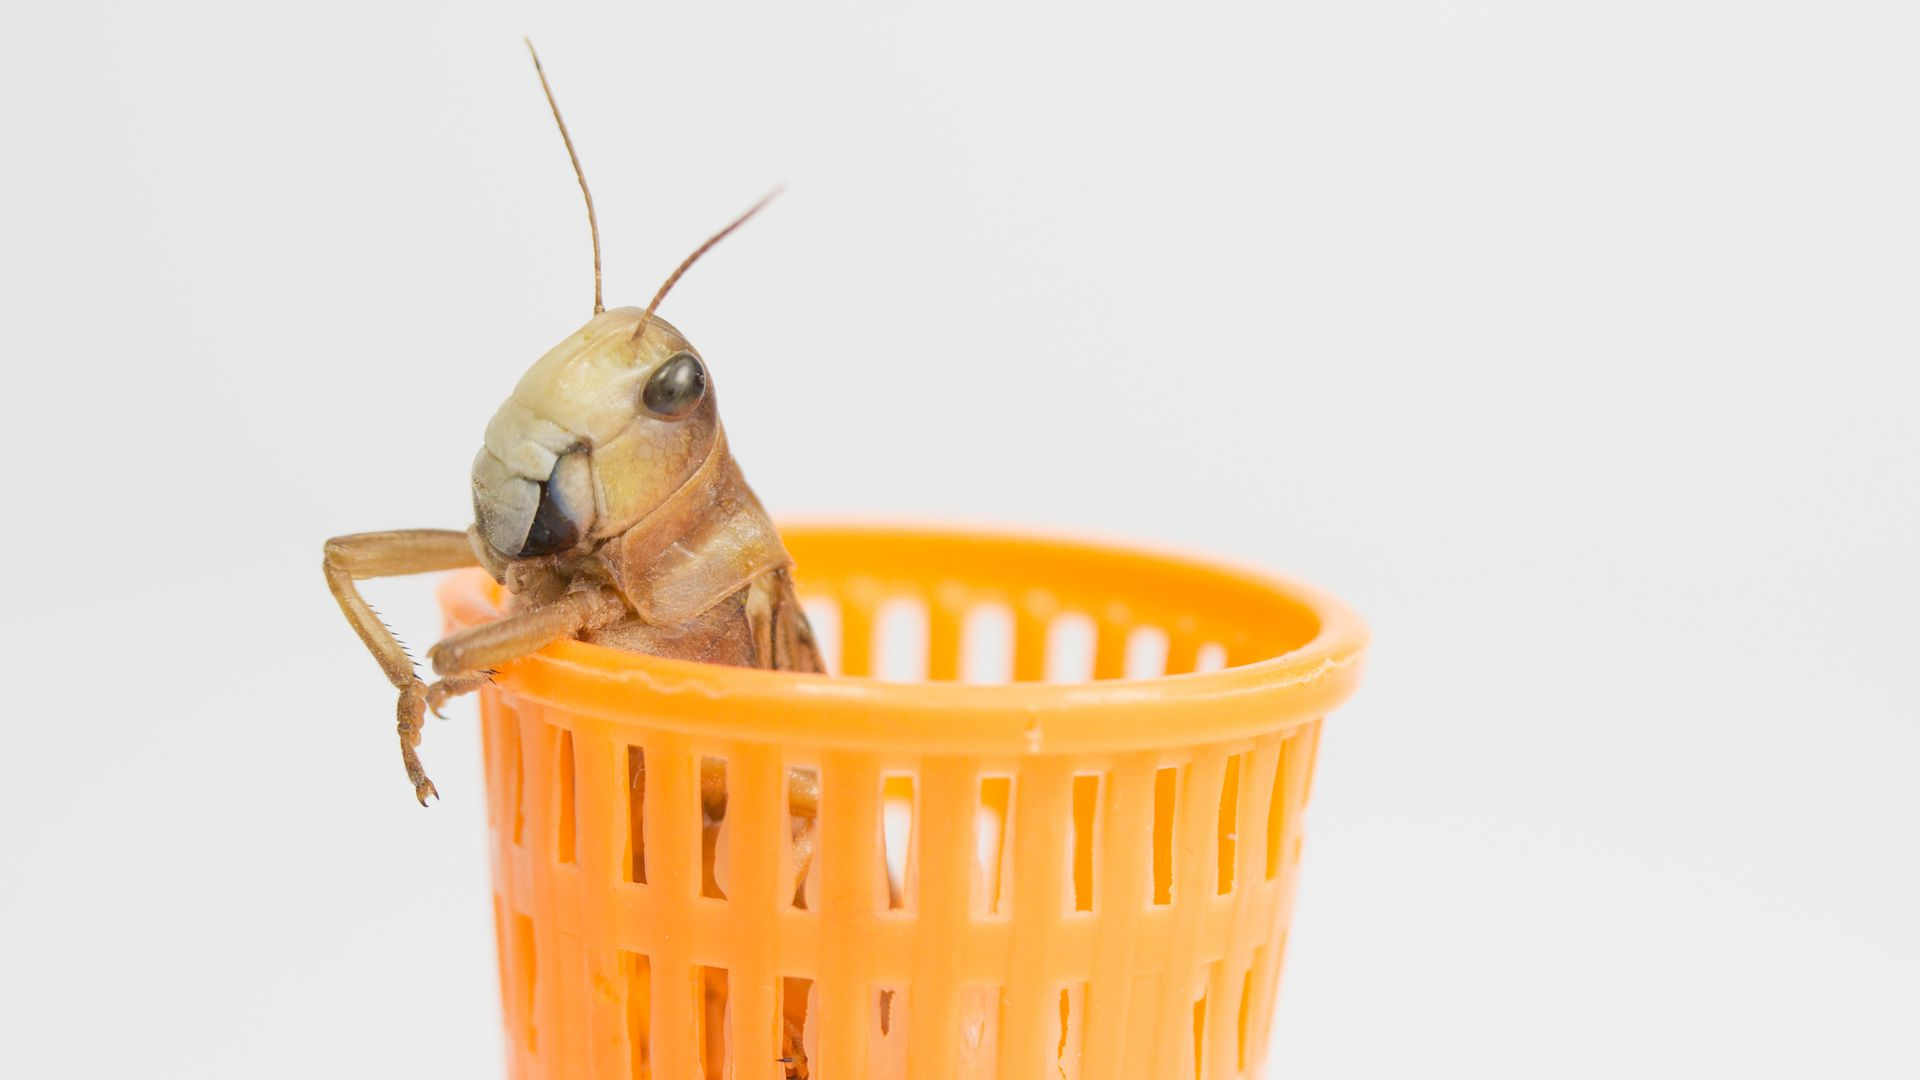 Cricket in a wastebasket